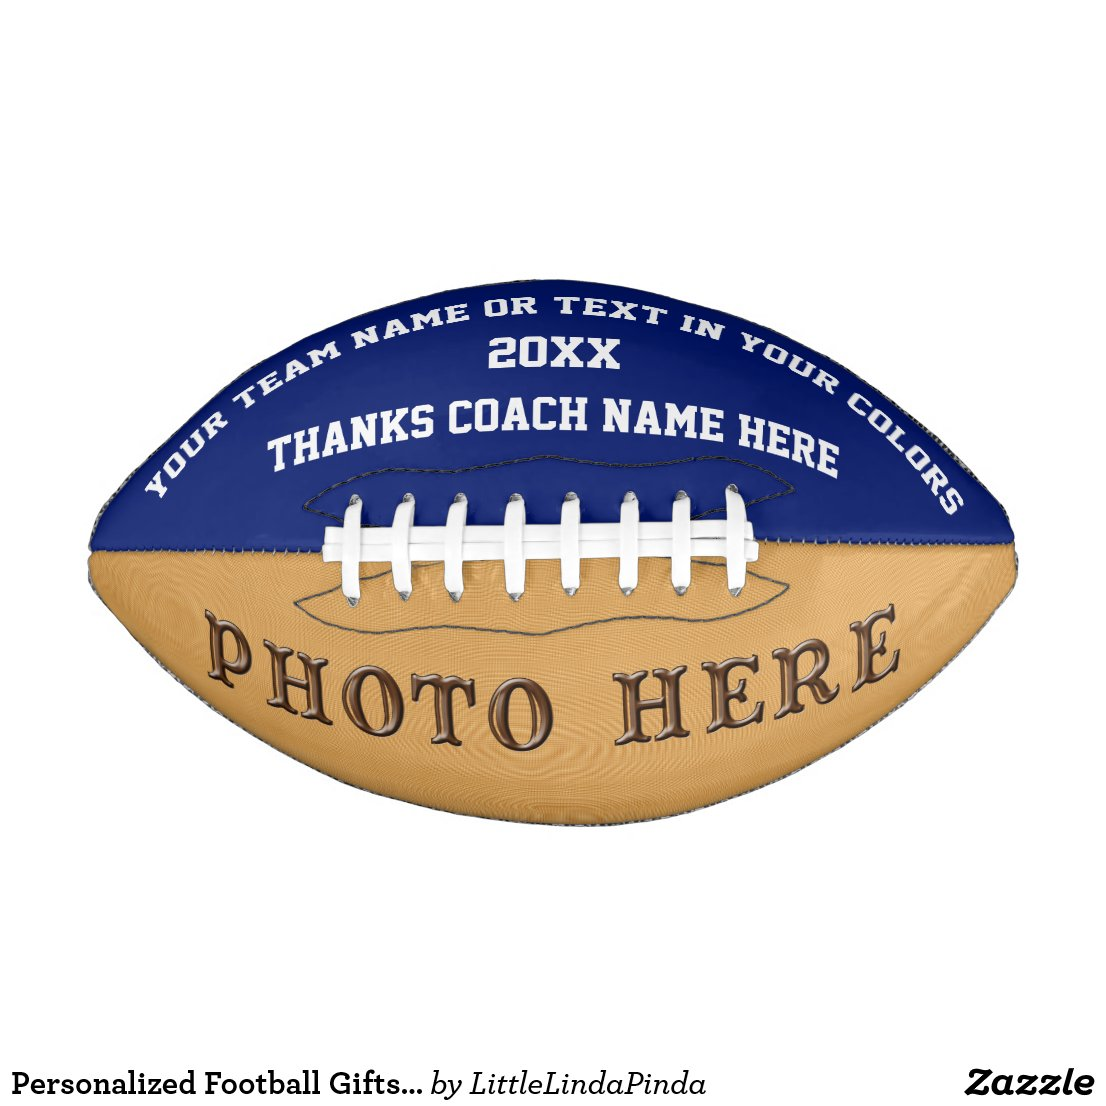 Personalized Football Gifts for Coaches, PHOTO